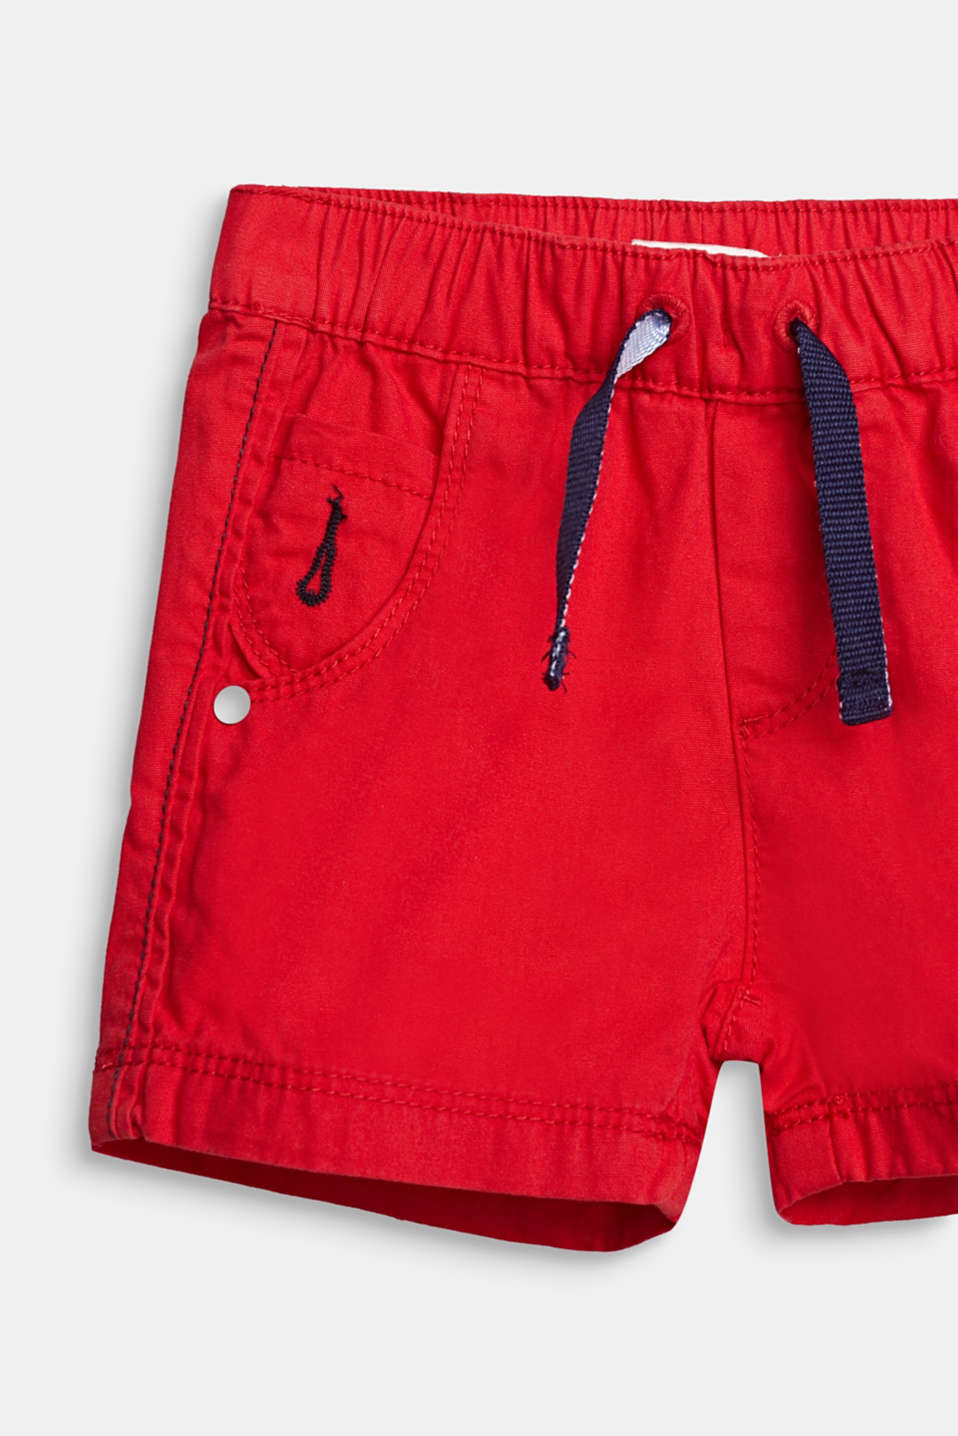 Woven shorts in 100% cotton, LCRED, detail image number 1